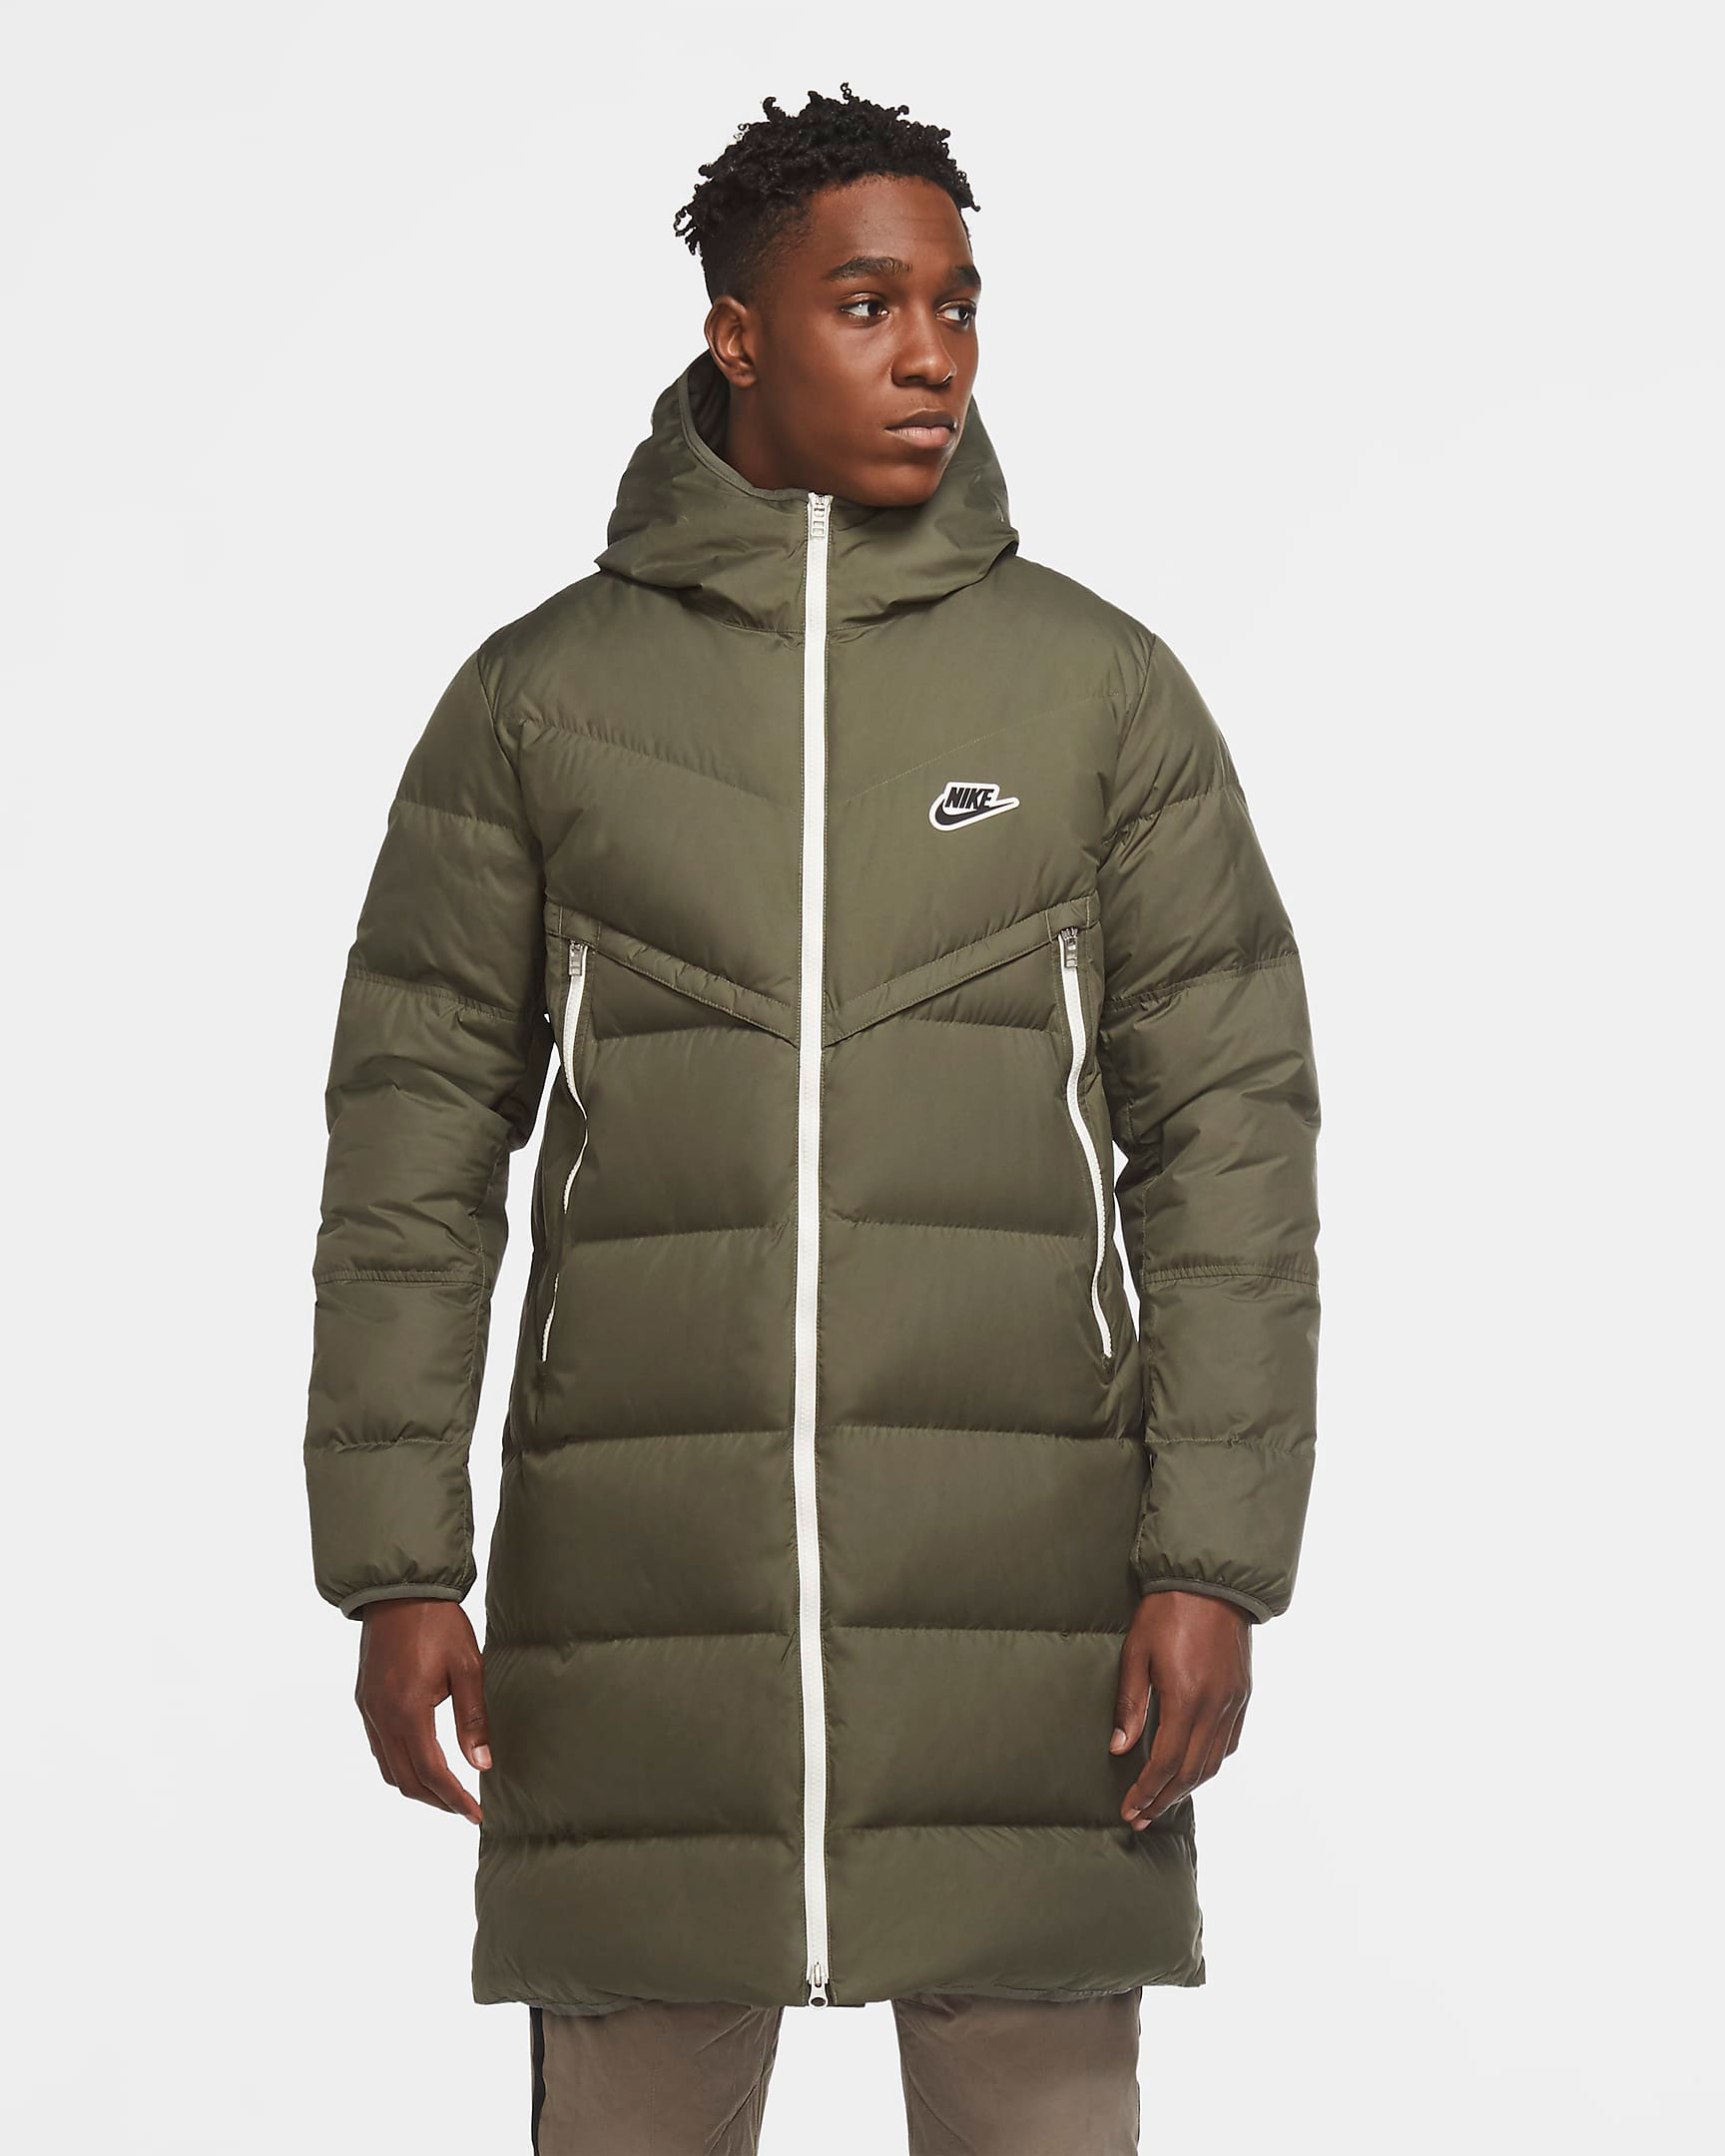 nike-windrunner-parka-jacket-twilight-marsh-olive-green